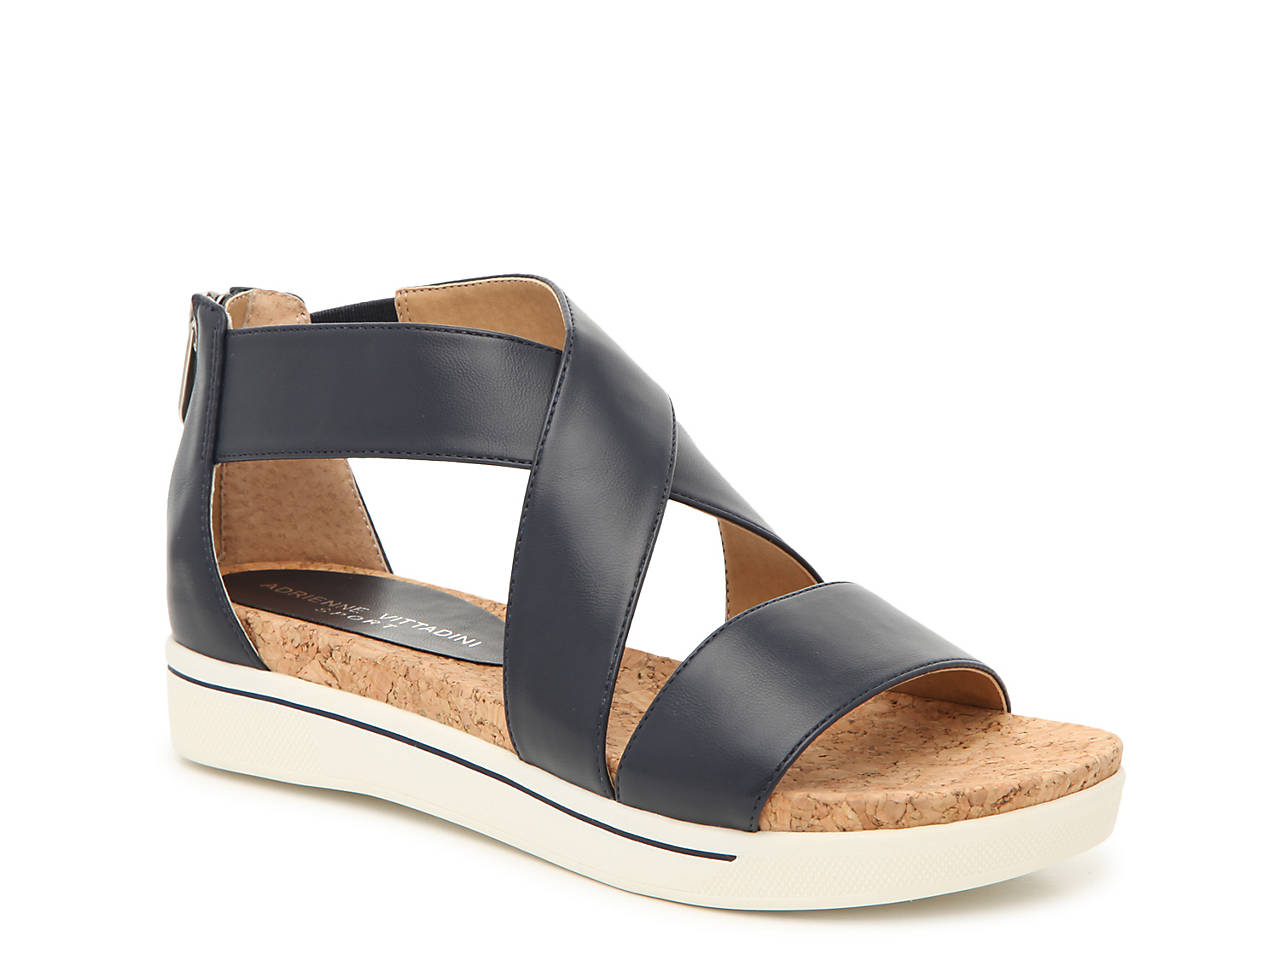 d6a7be9ab4bb Adrienne Vittadini Cheers Wedge Sandal Women s Shoes